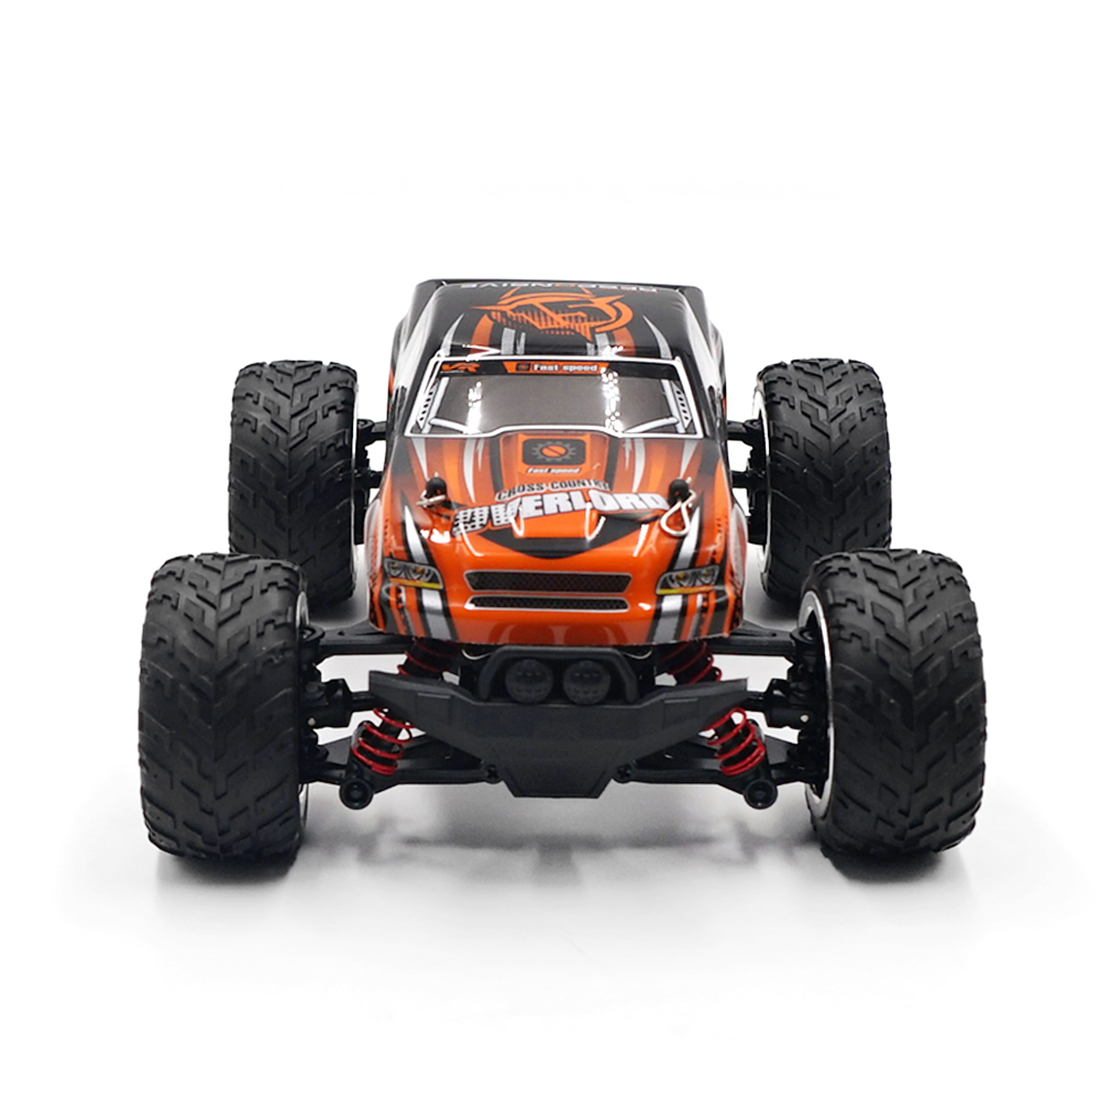 1pcs FY 15 1:20 2.4G 4WD High-speed Remote Control Off-road Vehicle RC Boys Sports Car Toys for Kids Children 2018 New Arrivel